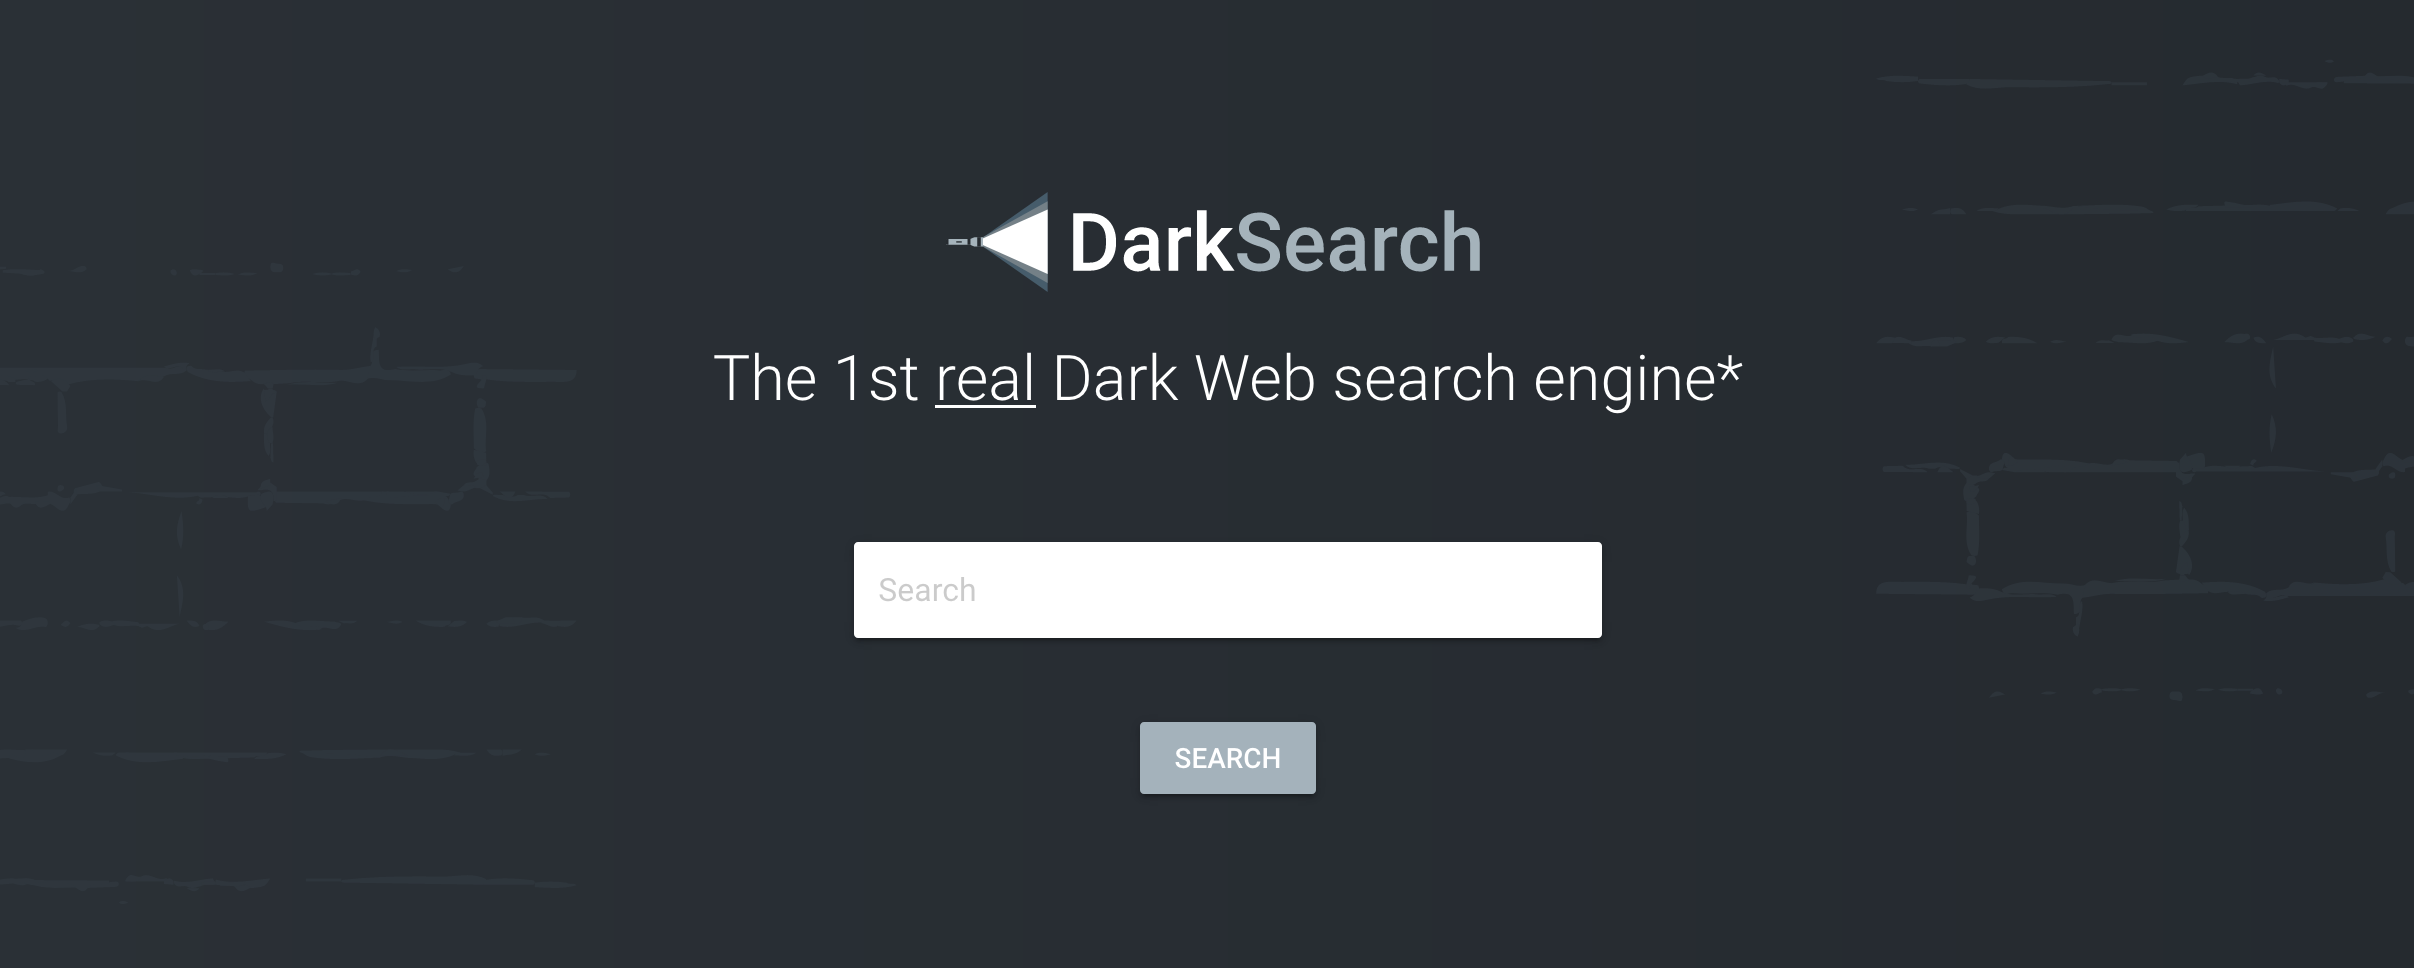 Dark web search engine